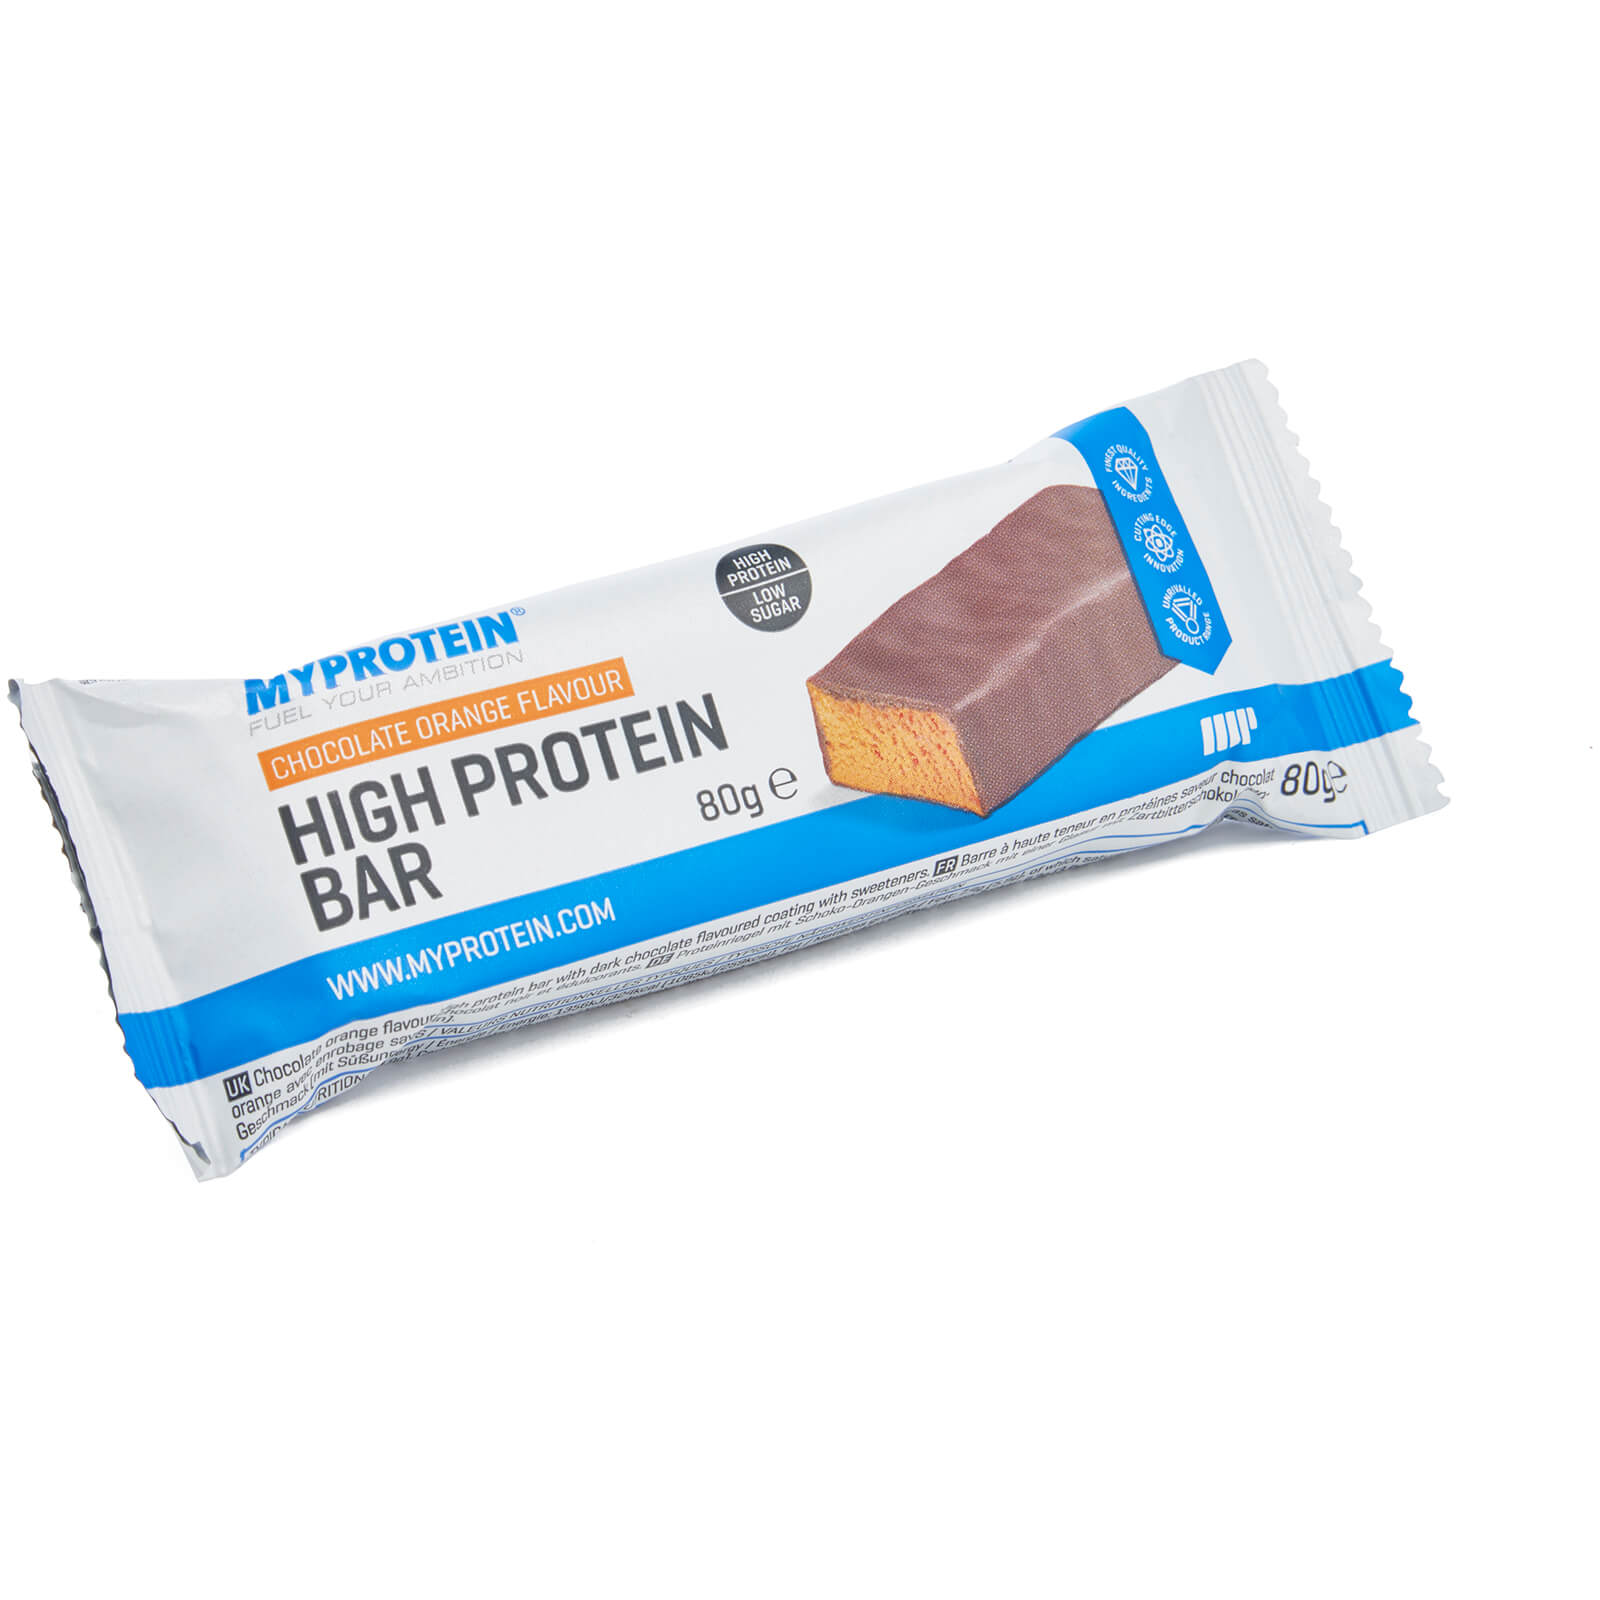 High Protein Bar, Chocolate Orange (Sample), 80g